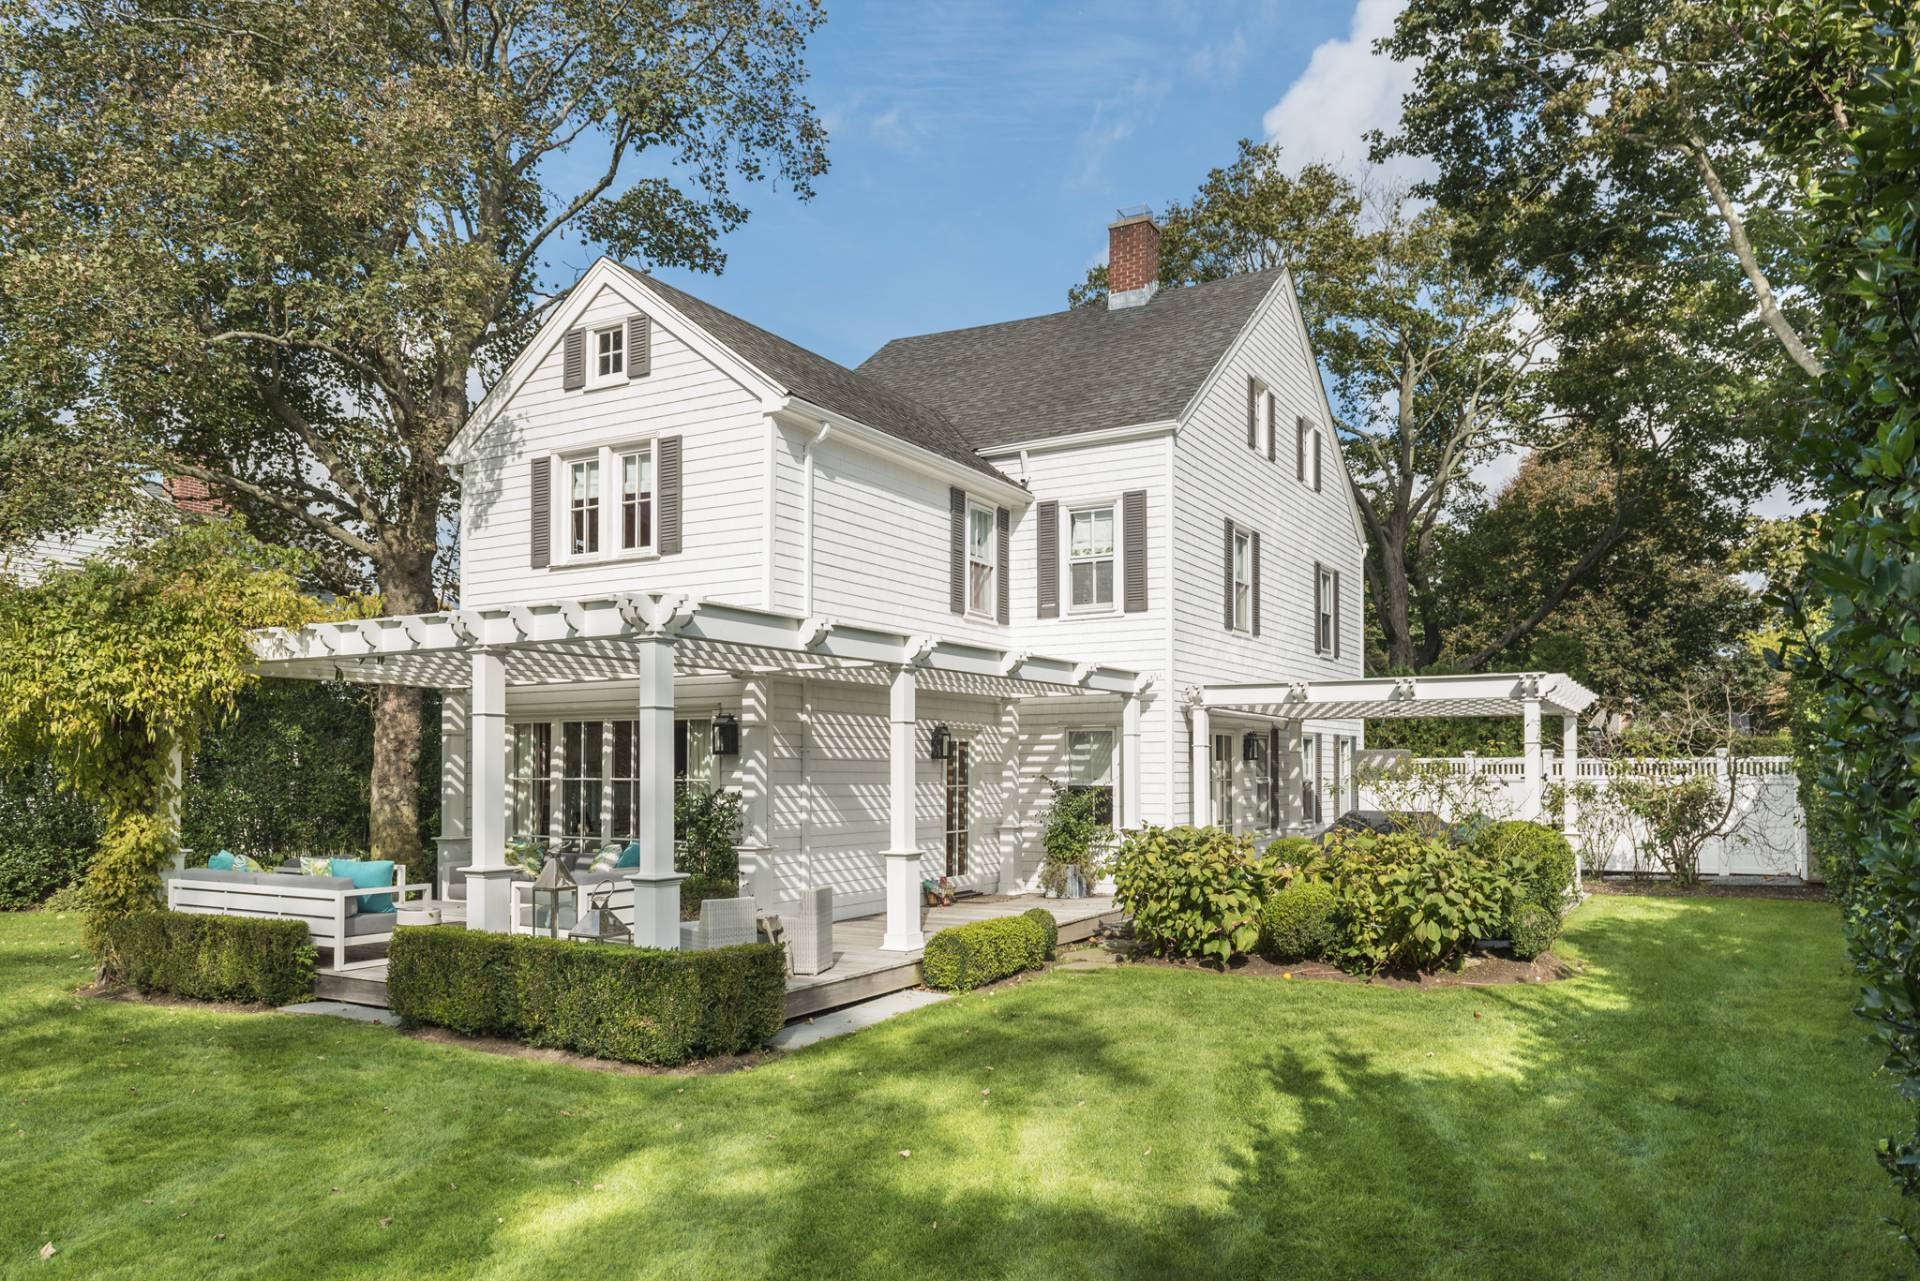 Single Family Home for Sale at Masterful Restoration Of 1820's Traditional 224 Hill Street, Southampton, New York